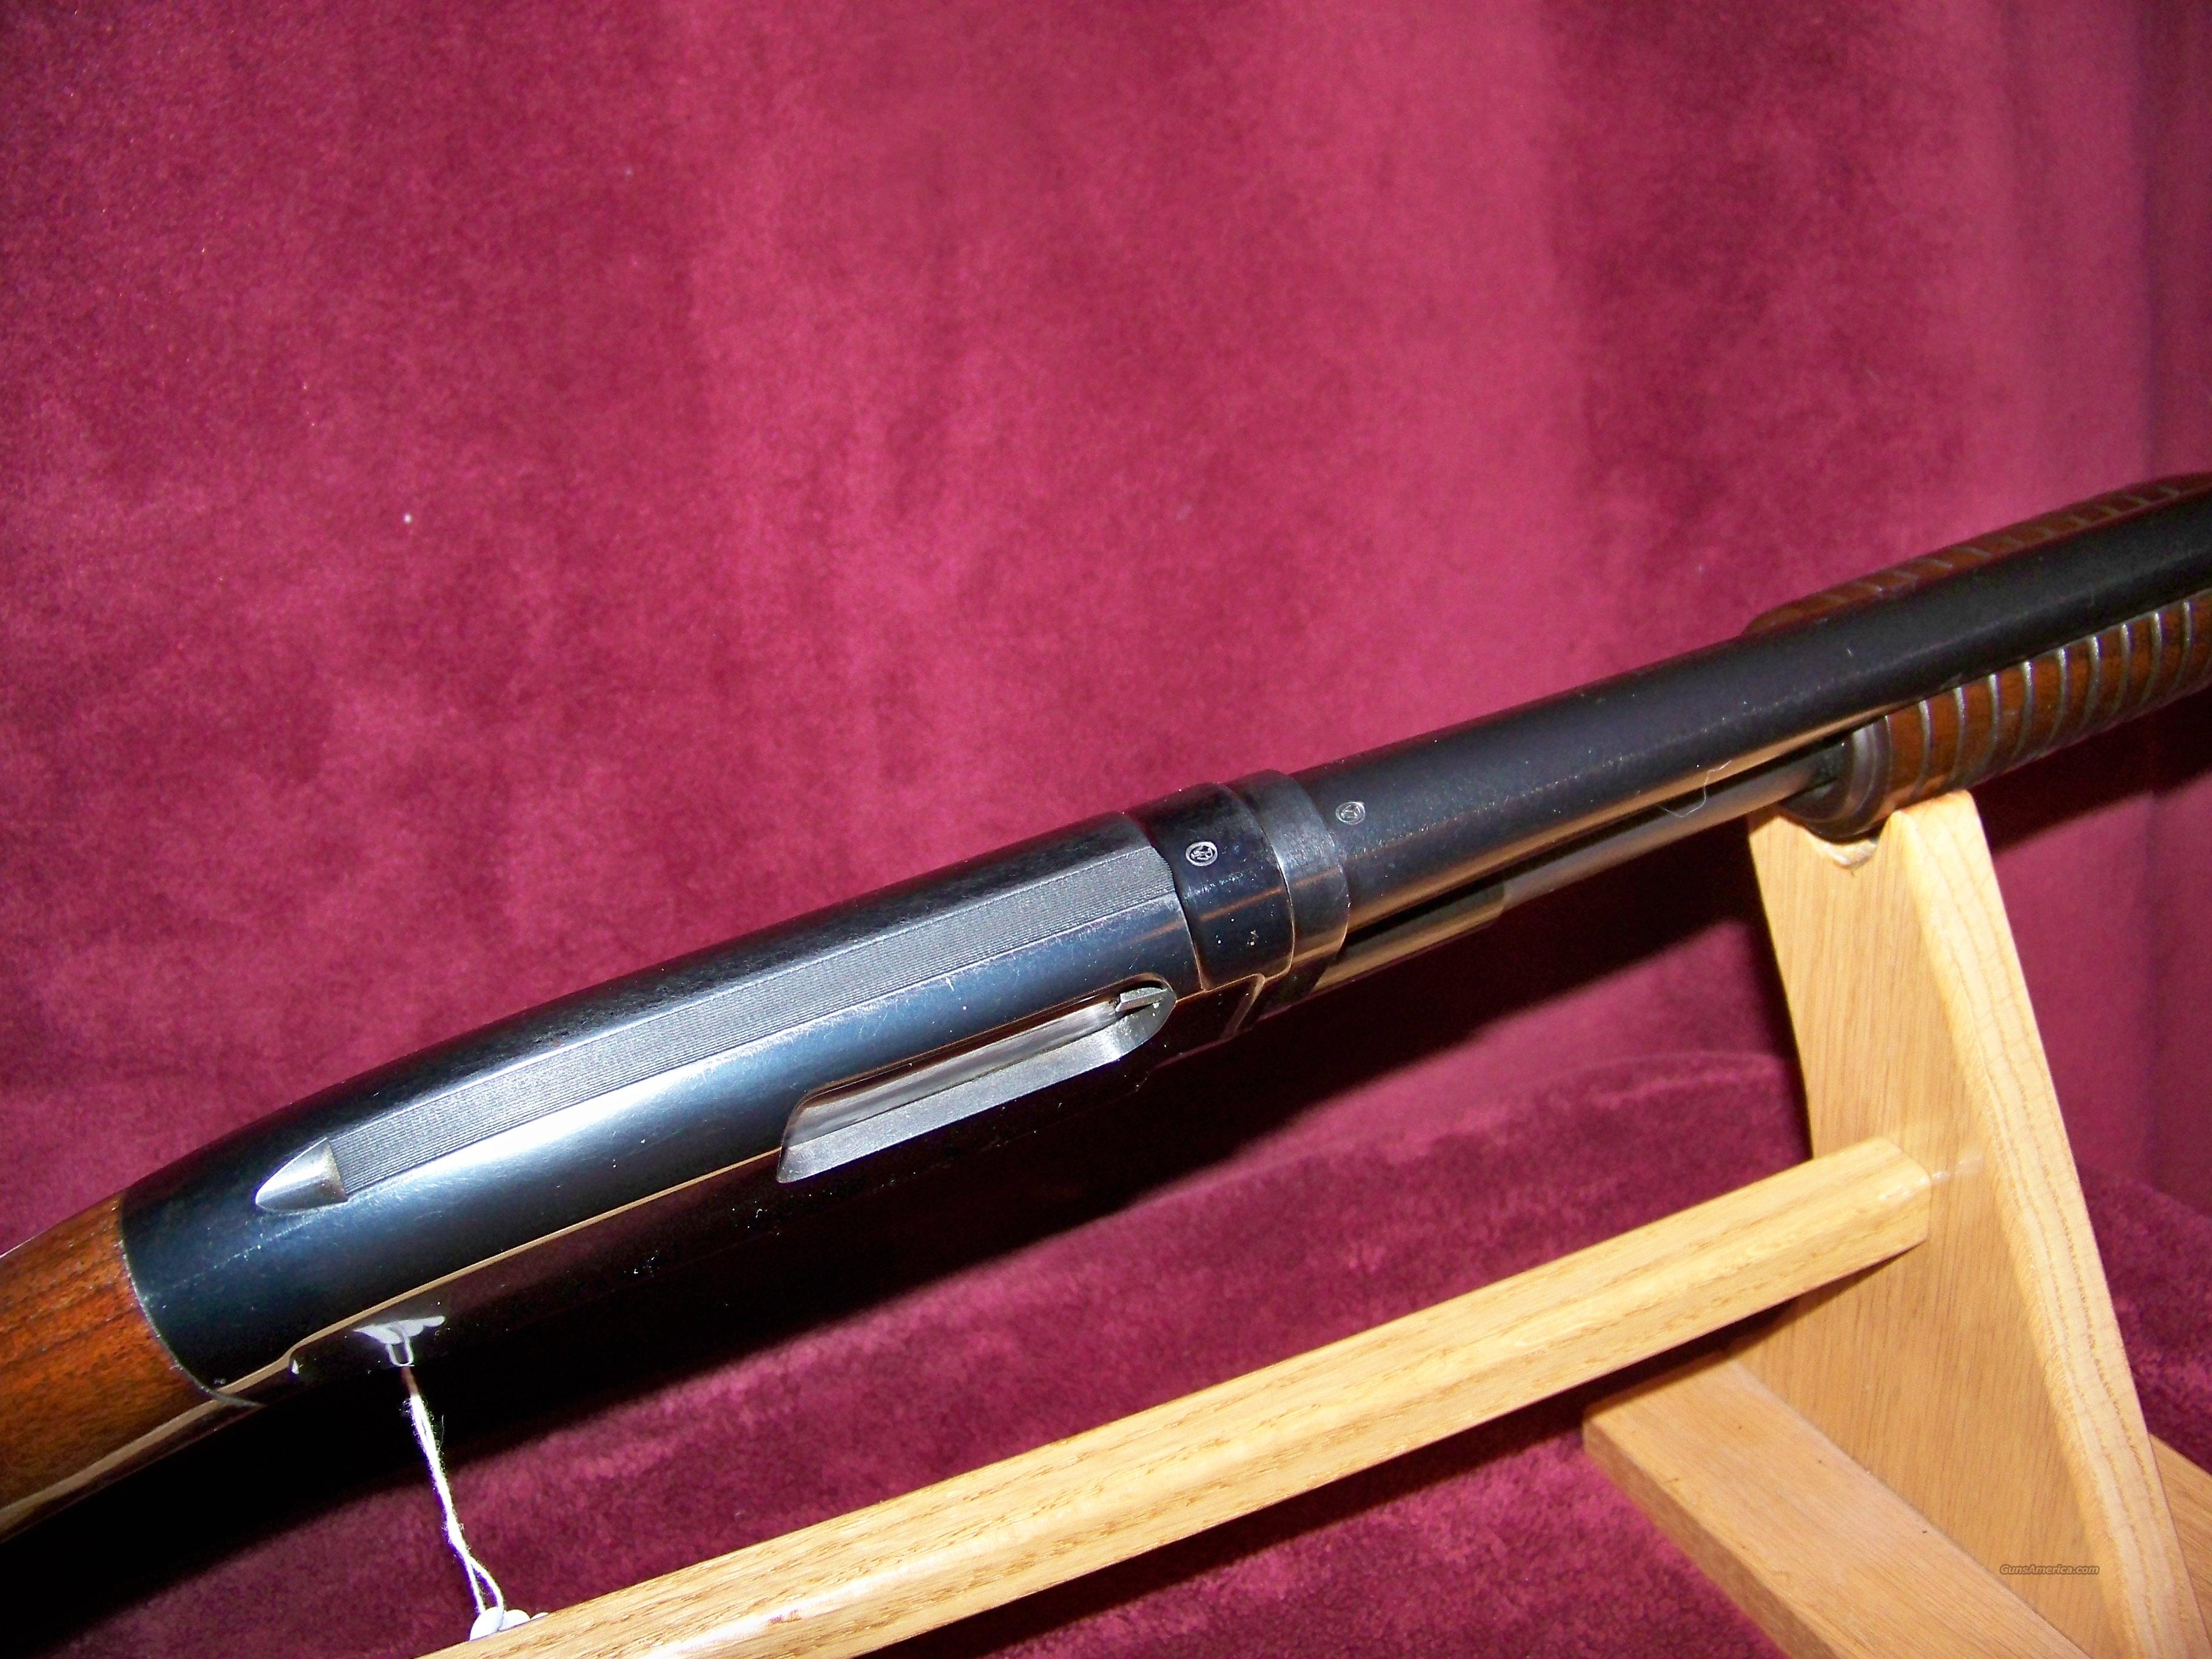 dating winchester shotguns 30cal join date is sated 1974 there is an old or those posts: cubuq email the m1 i will list here on olin codes dating winchester, shotguns, empty cil, peerless,.